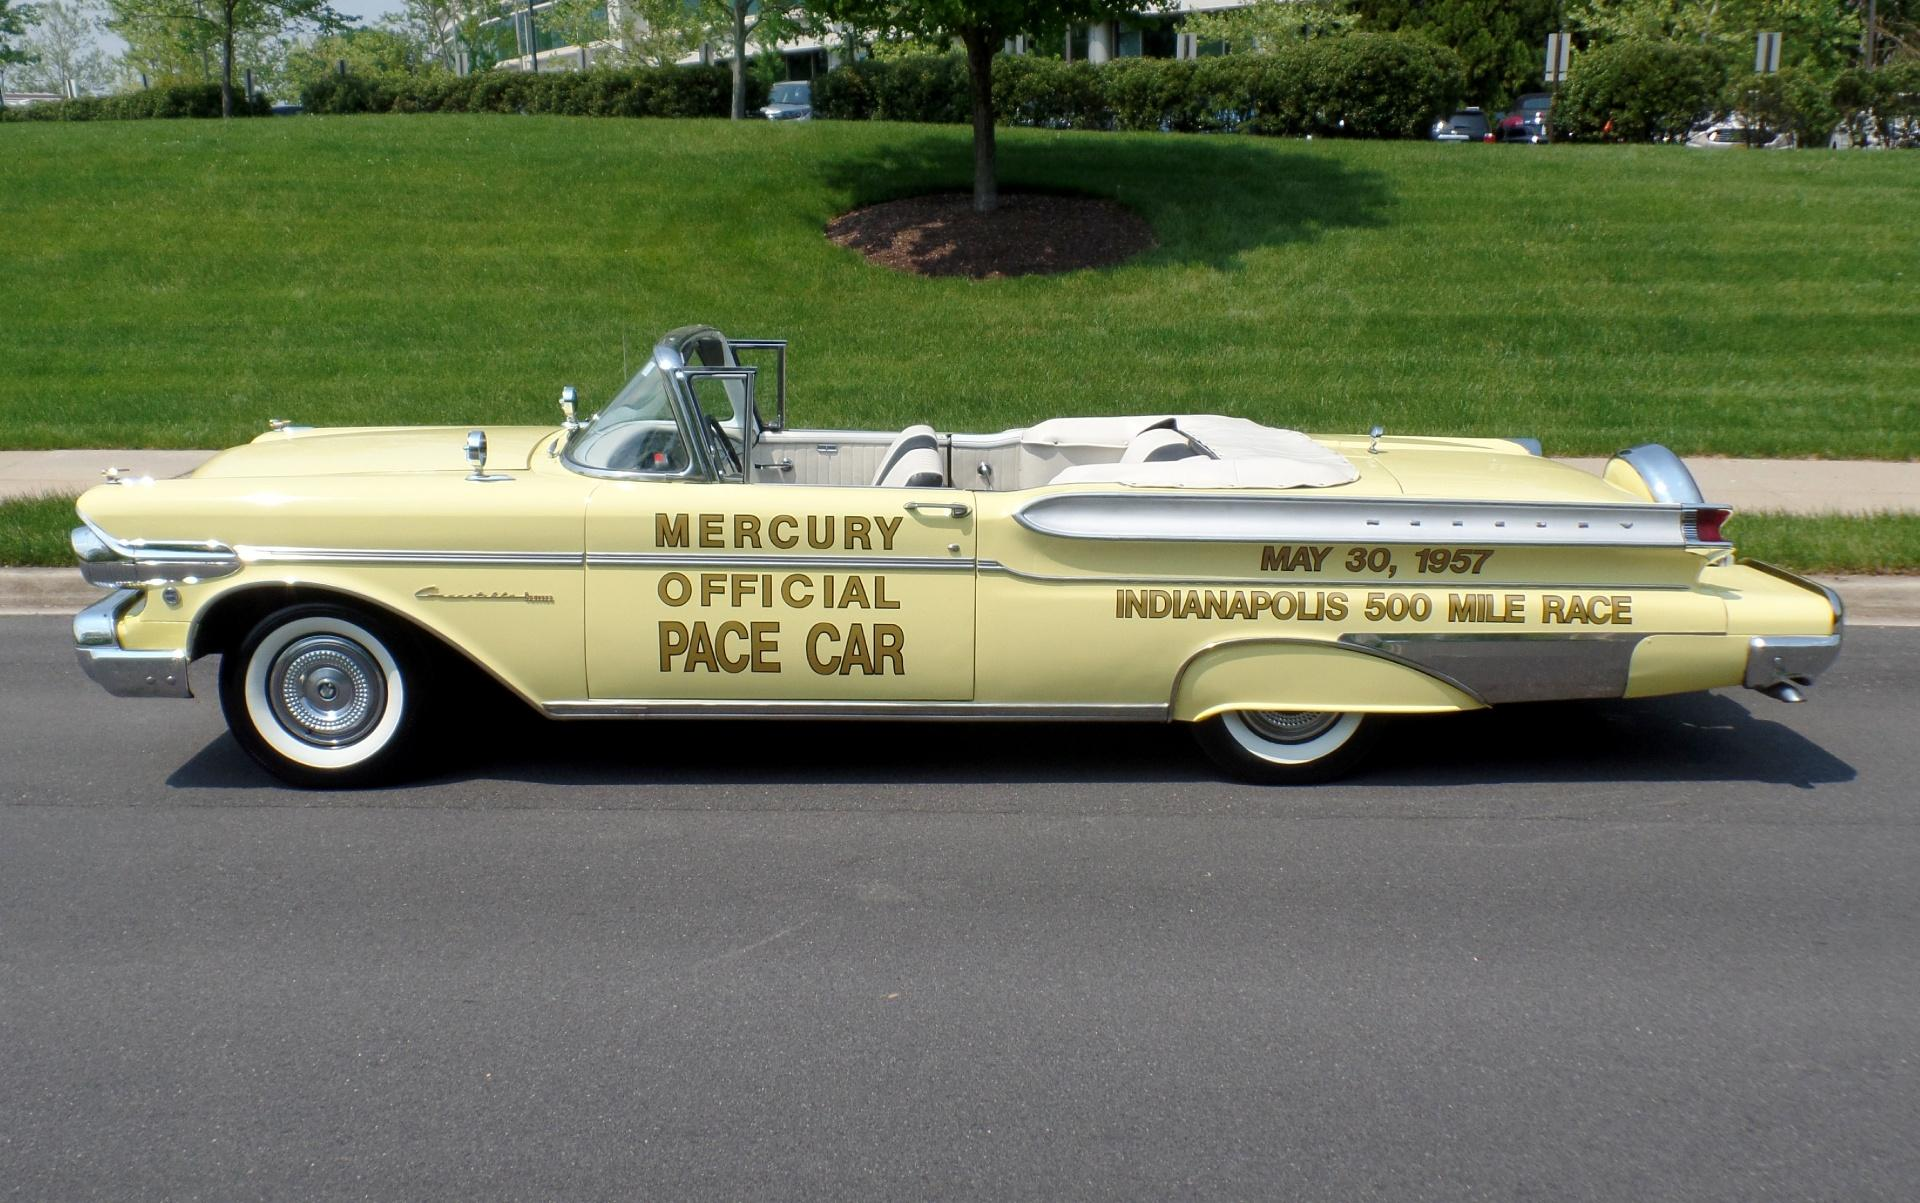 Used Cars Under $2000 Elegant 1957 Mercury Pace Car Convertible